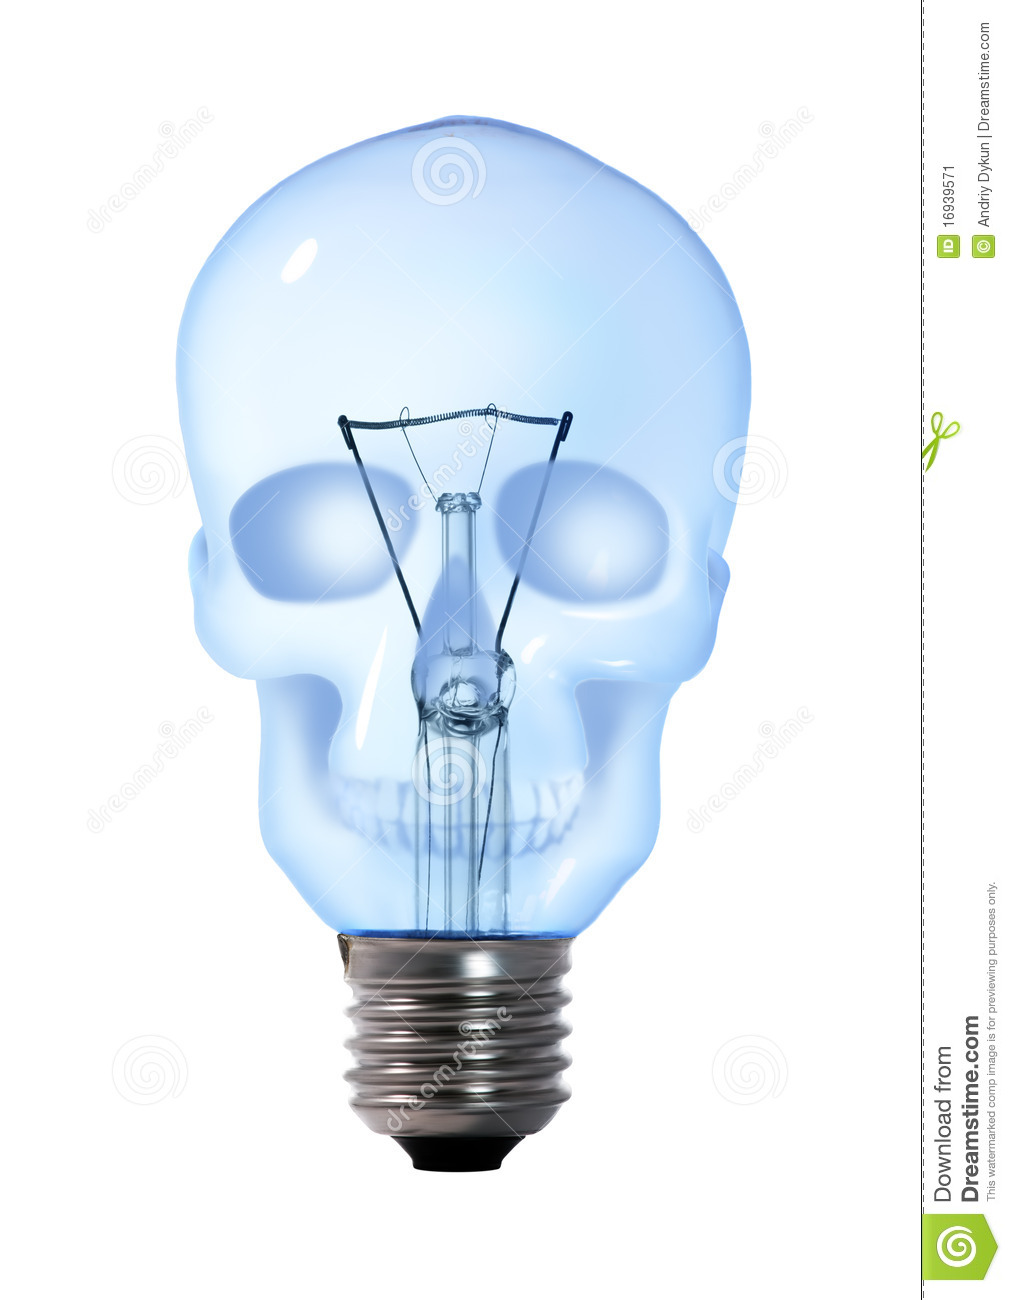 More similar stock images of ` Skull light bulb lamp `